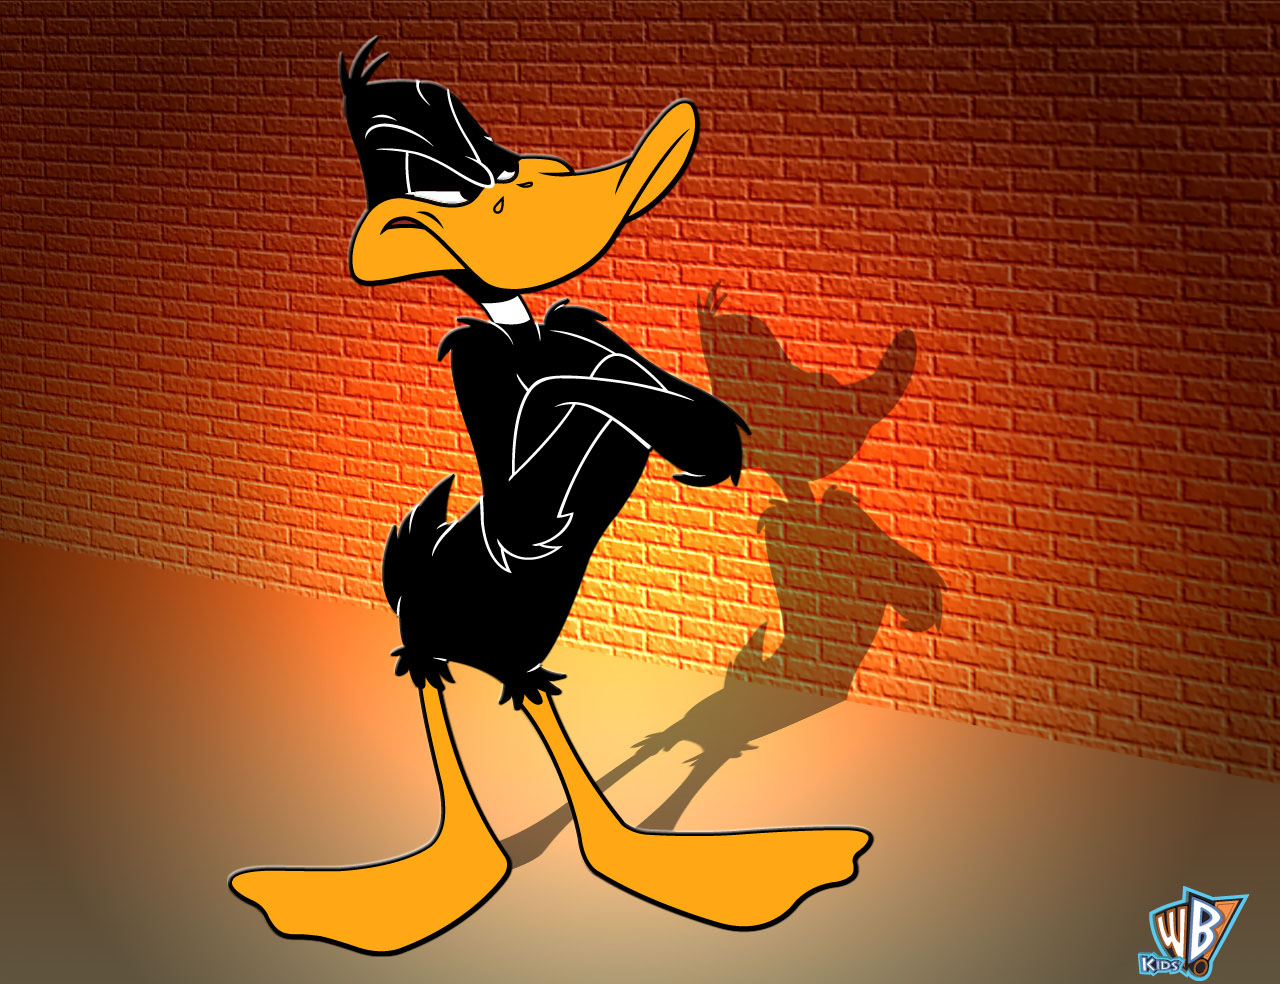 looney tunes daffy duck character wallpaper. Black Bedroom Furniture Sets. Home Design Ideas